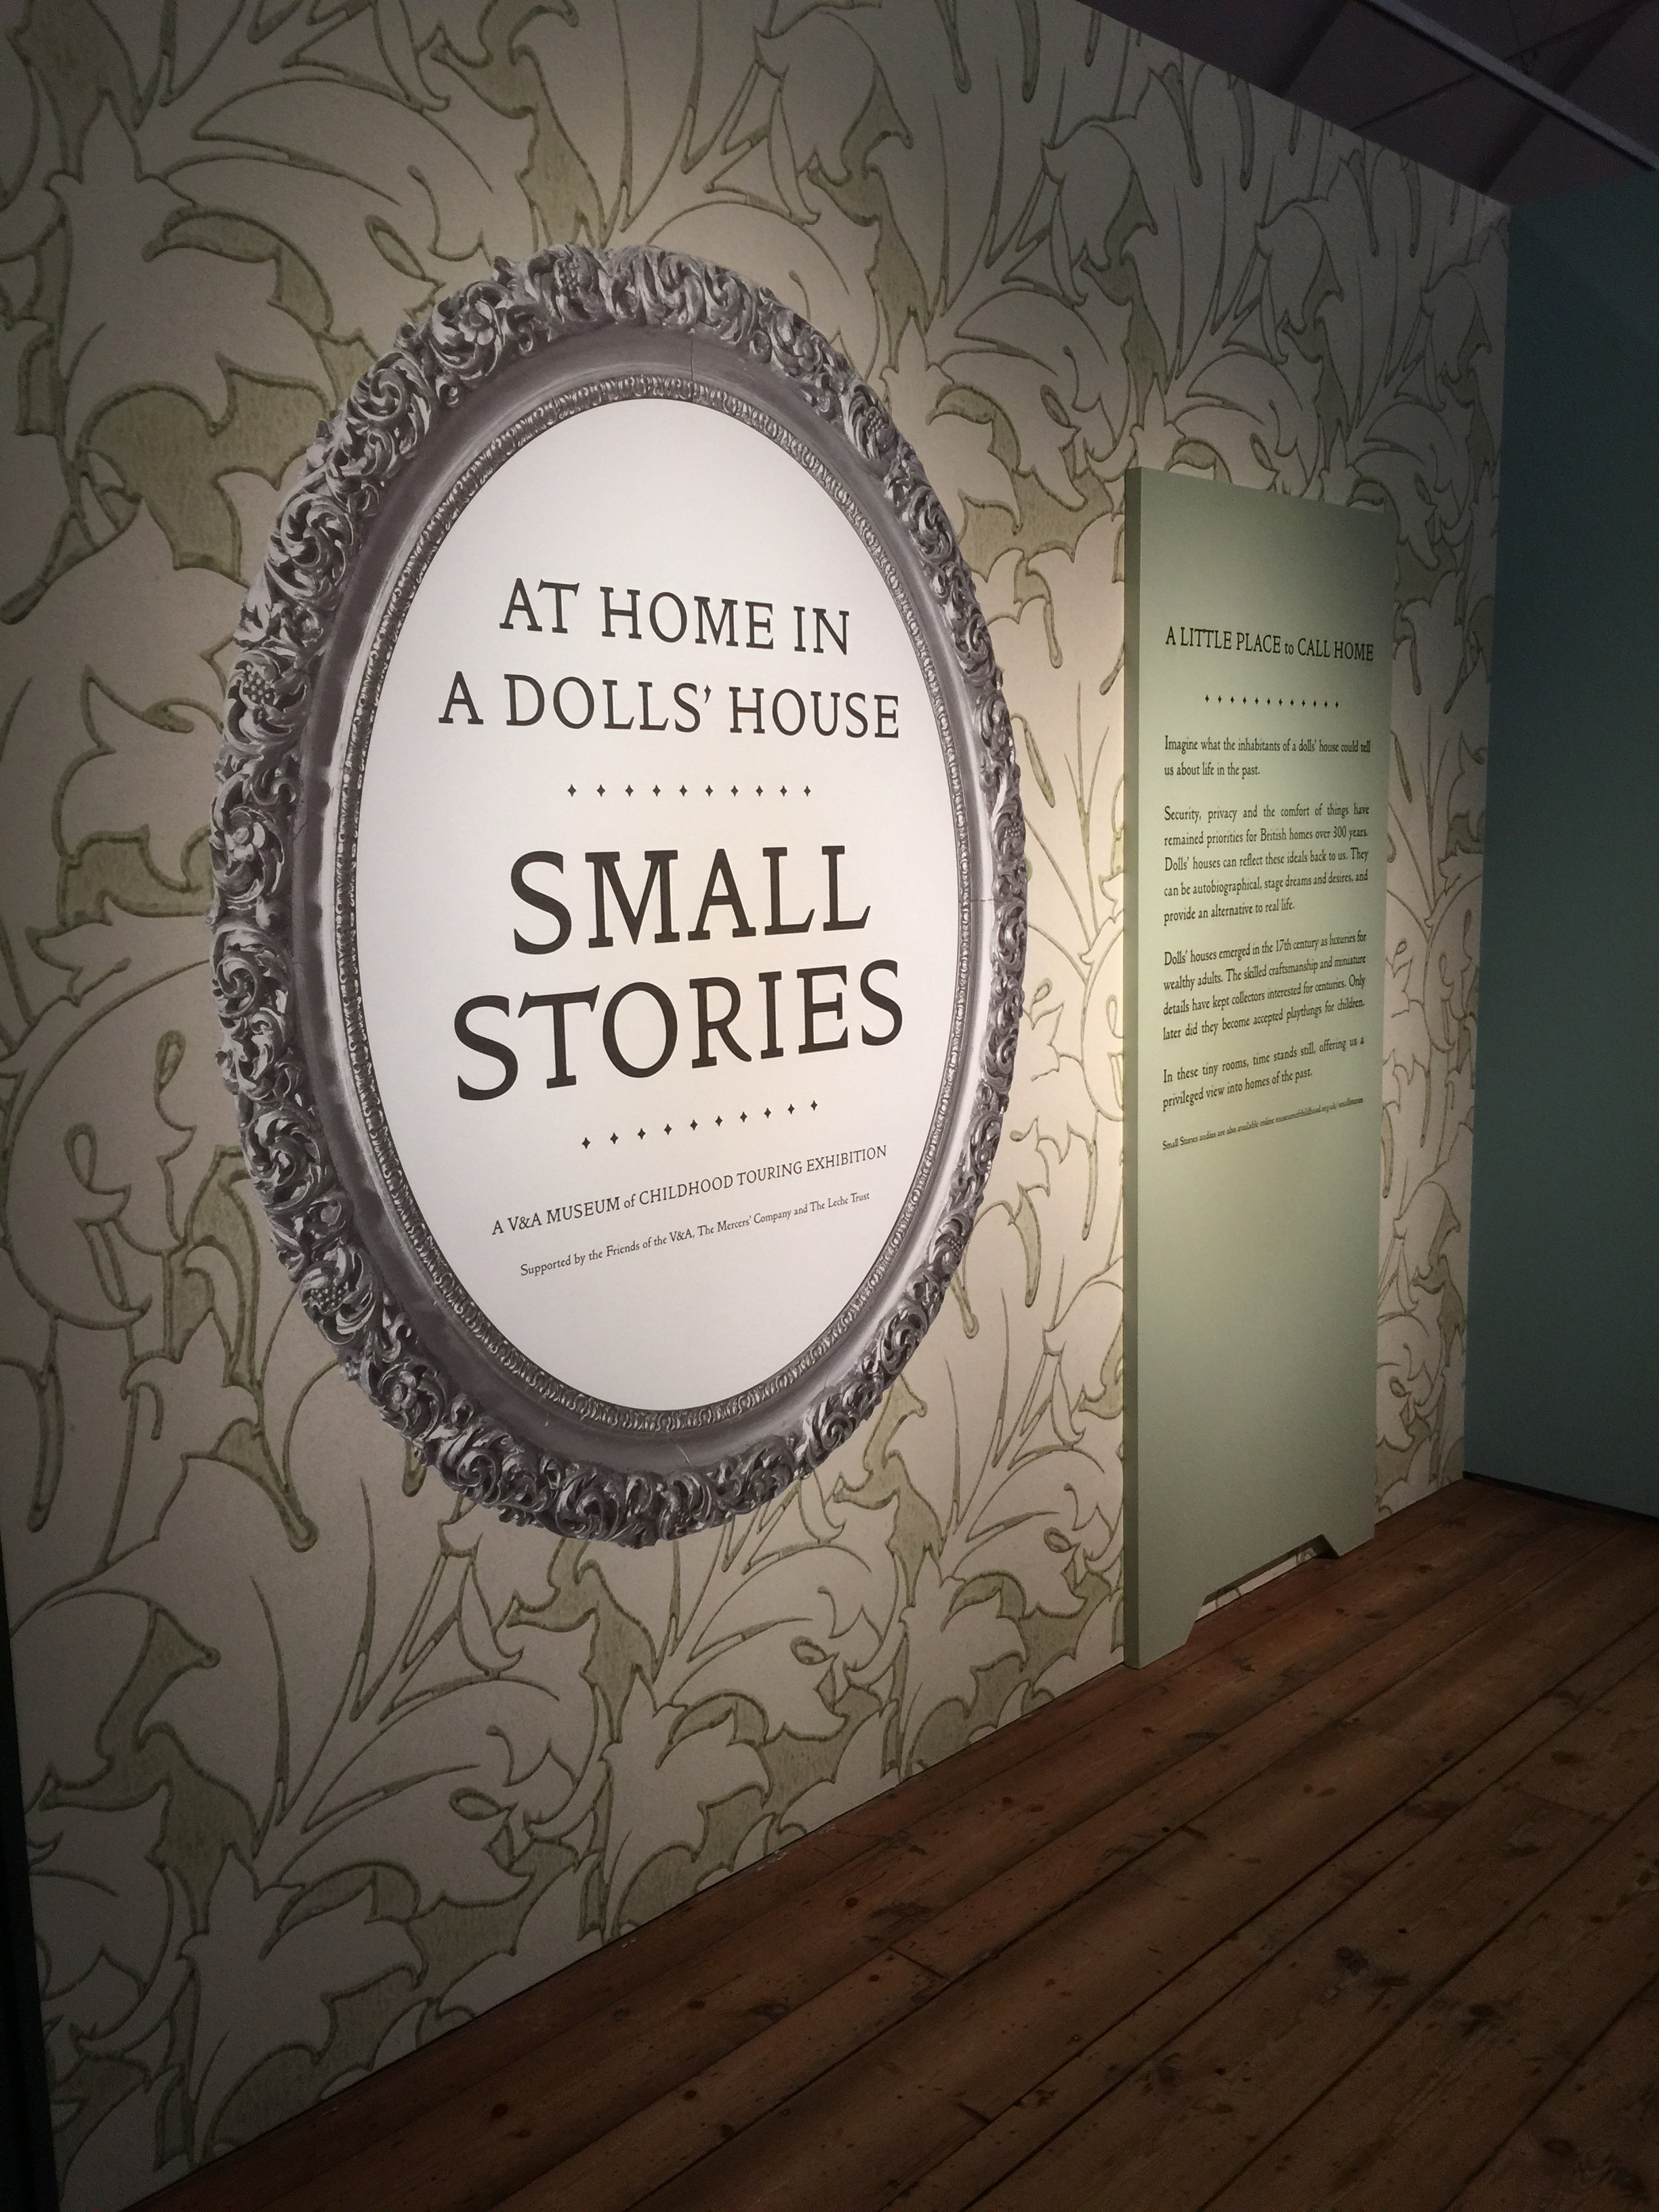 Small Stories Exhibition Trip! V&A MoC